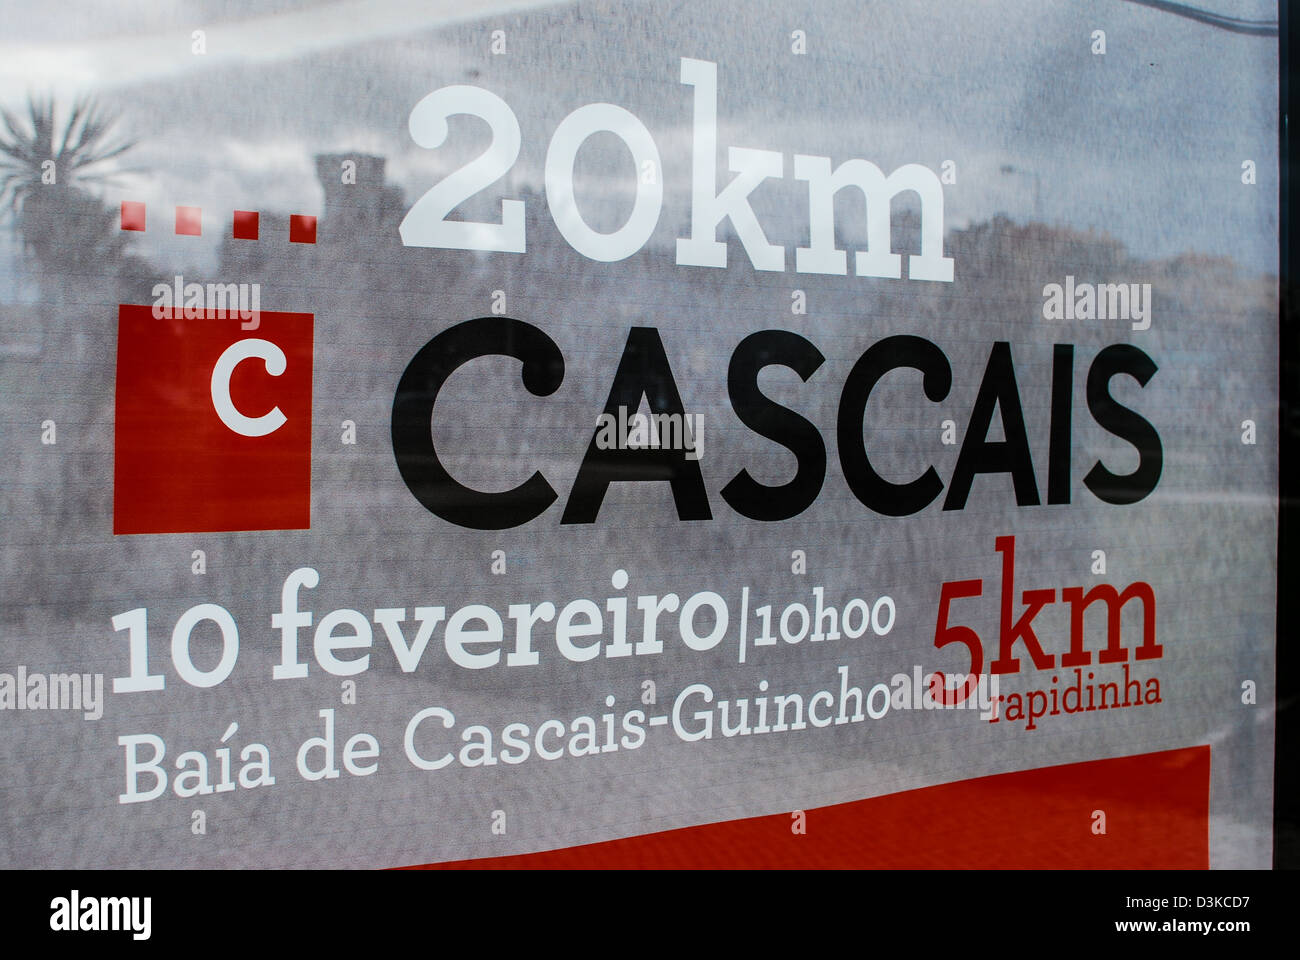 Cascais 20km running poster in Portugal Stock Photo